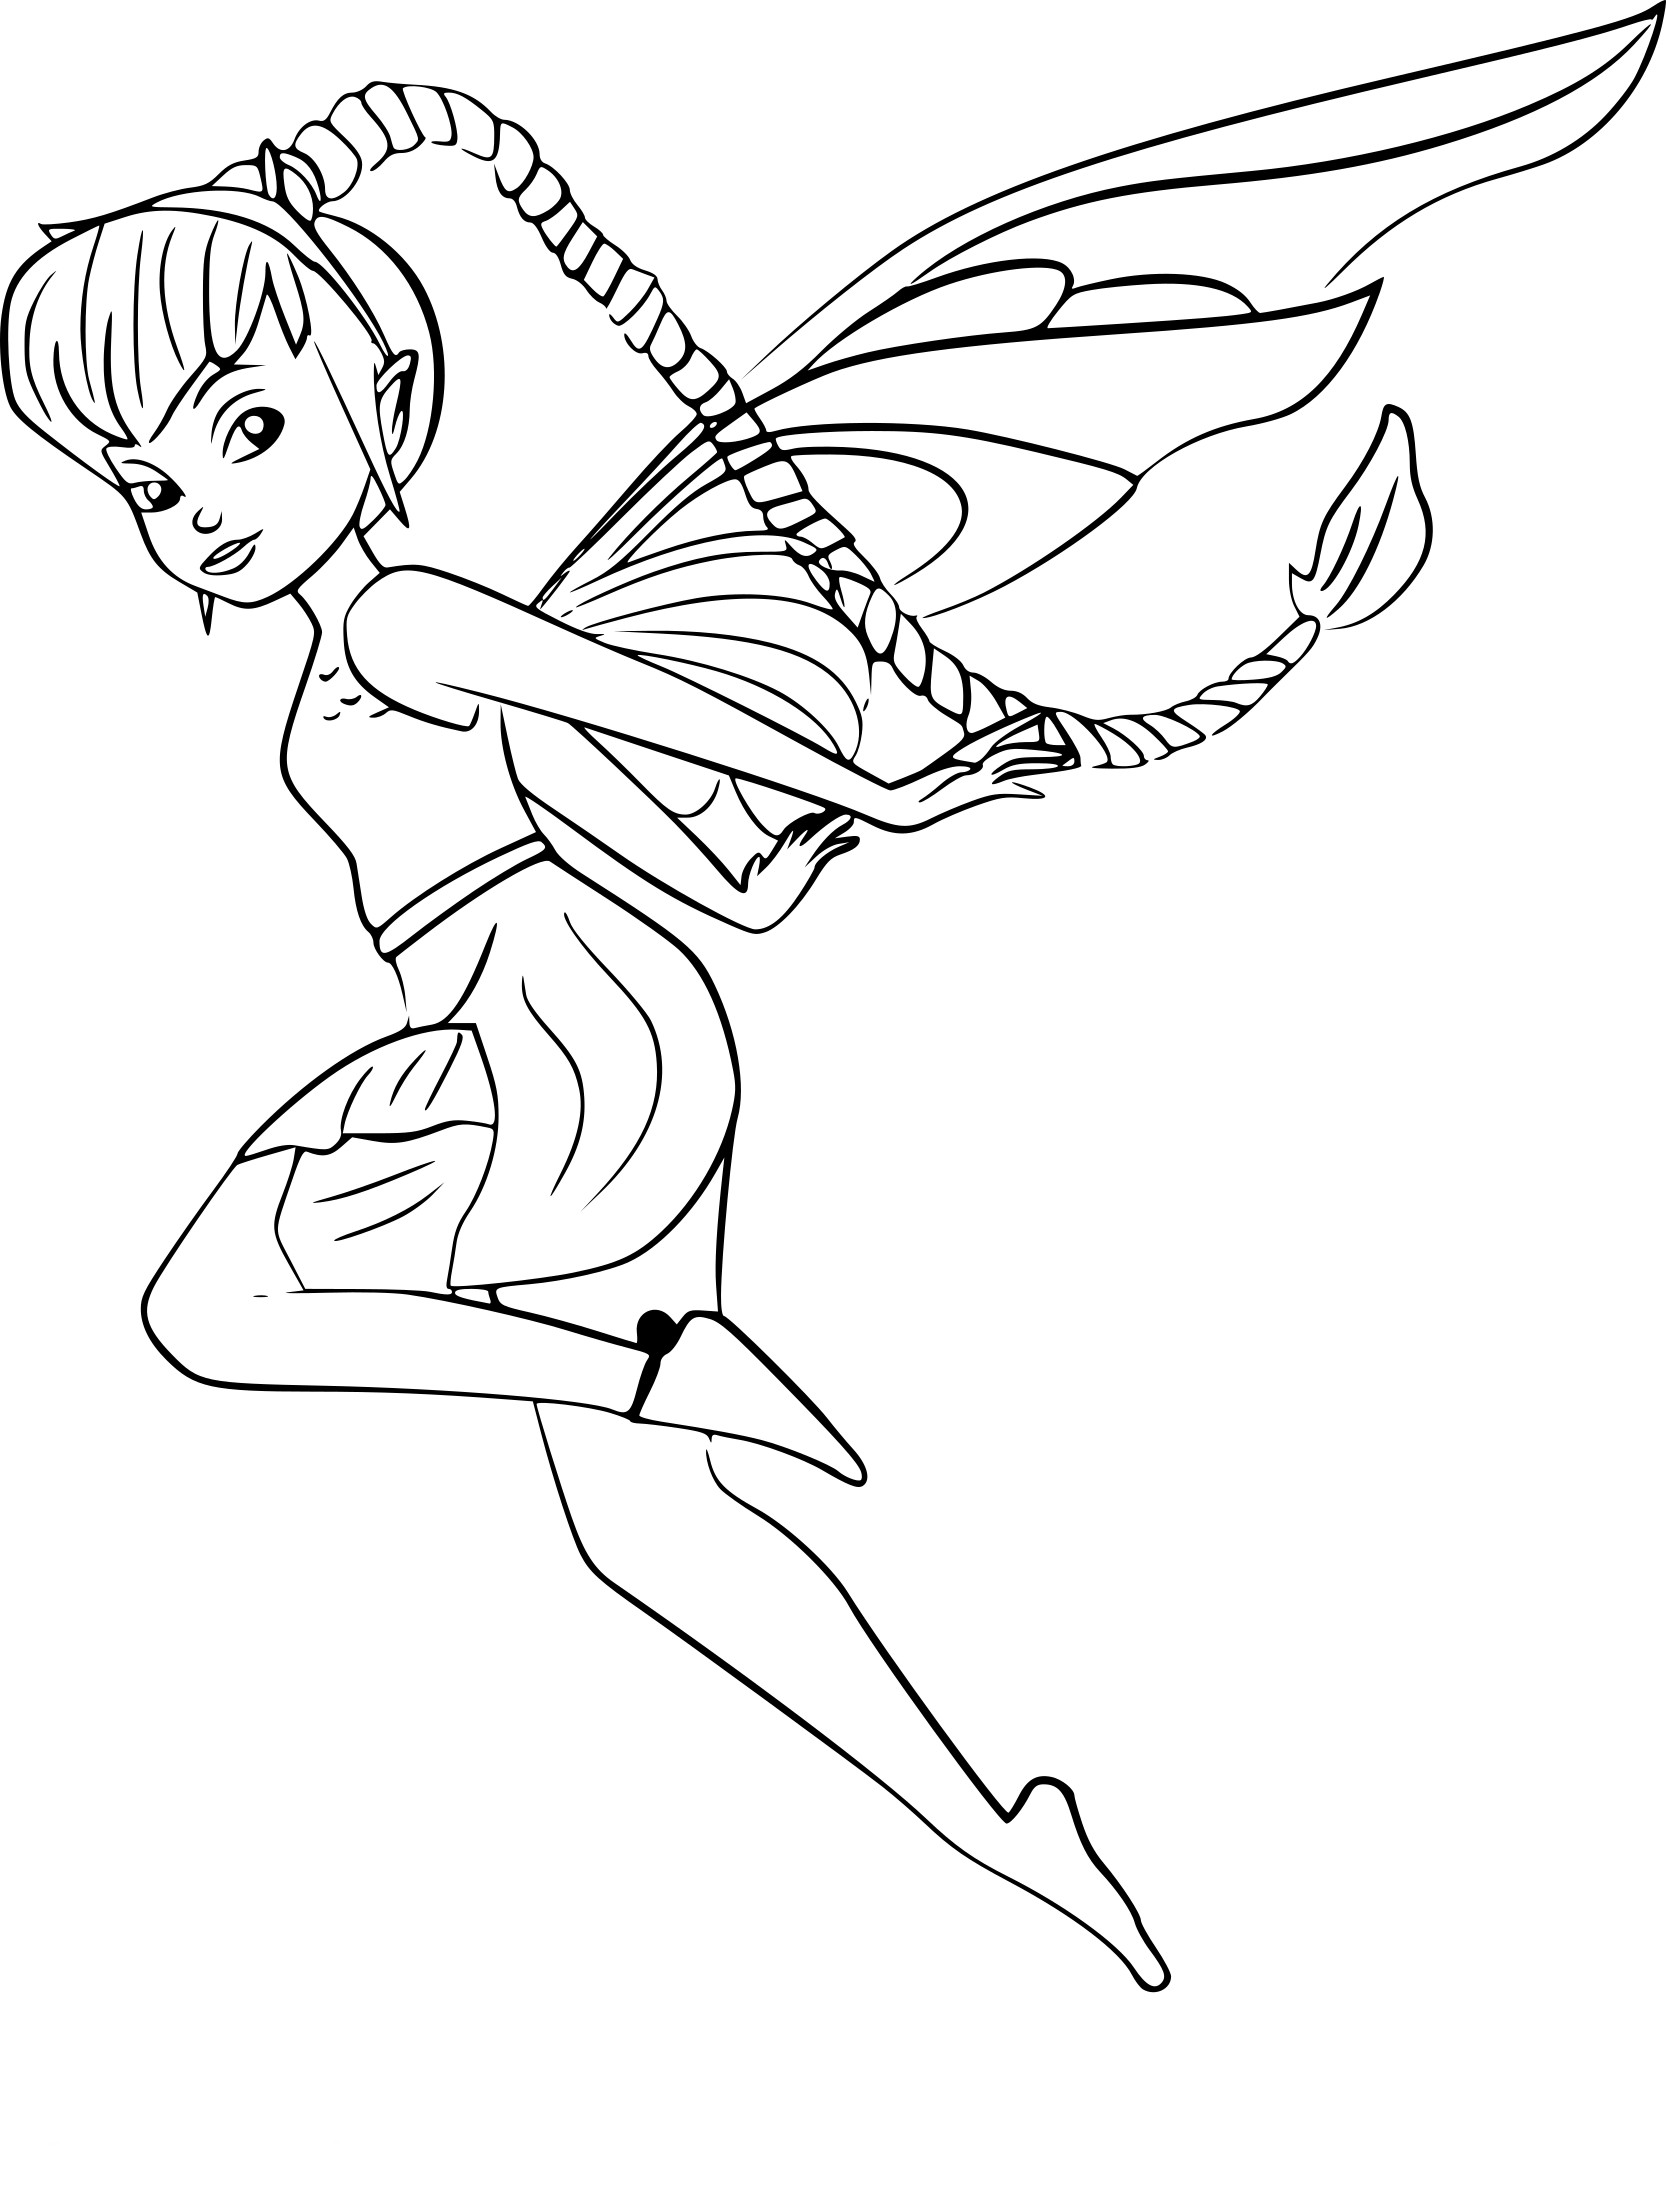 Coloriage De Fee Volante A Imprimer.New Coloriage De Fees A Imprimer Impressionnant Coloriage De Fees A